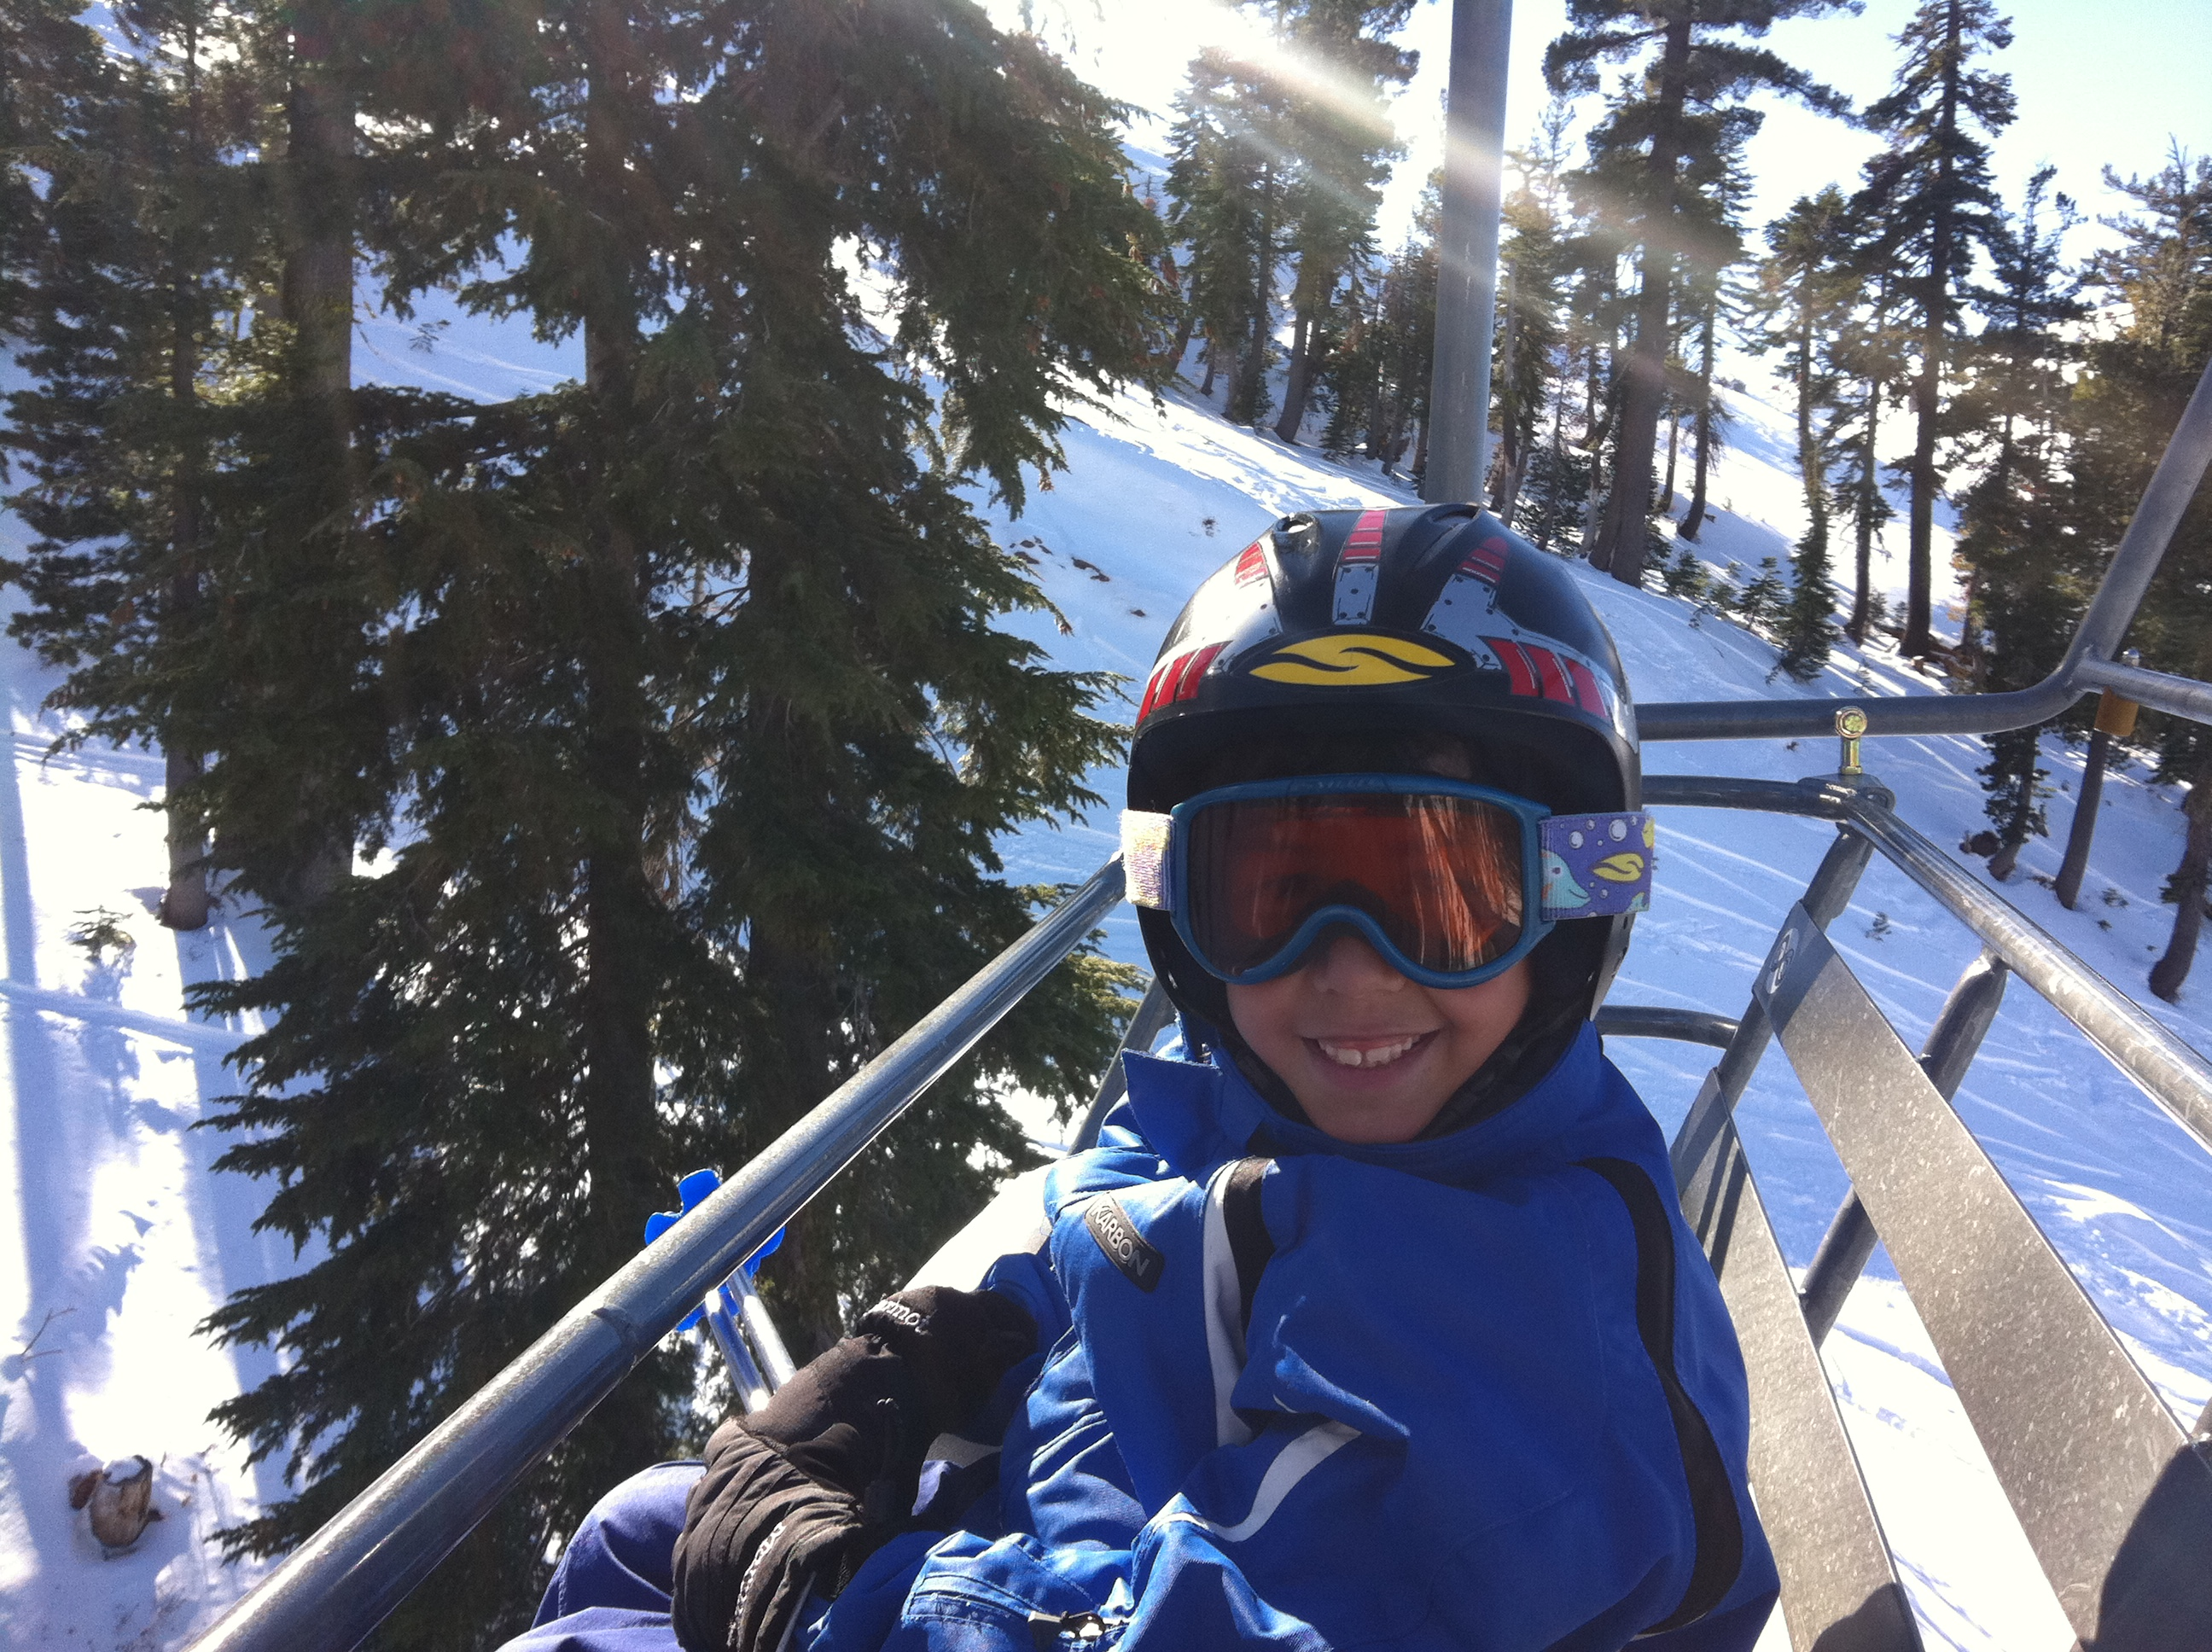 Chairlift Safety - smiling child on a chair lift